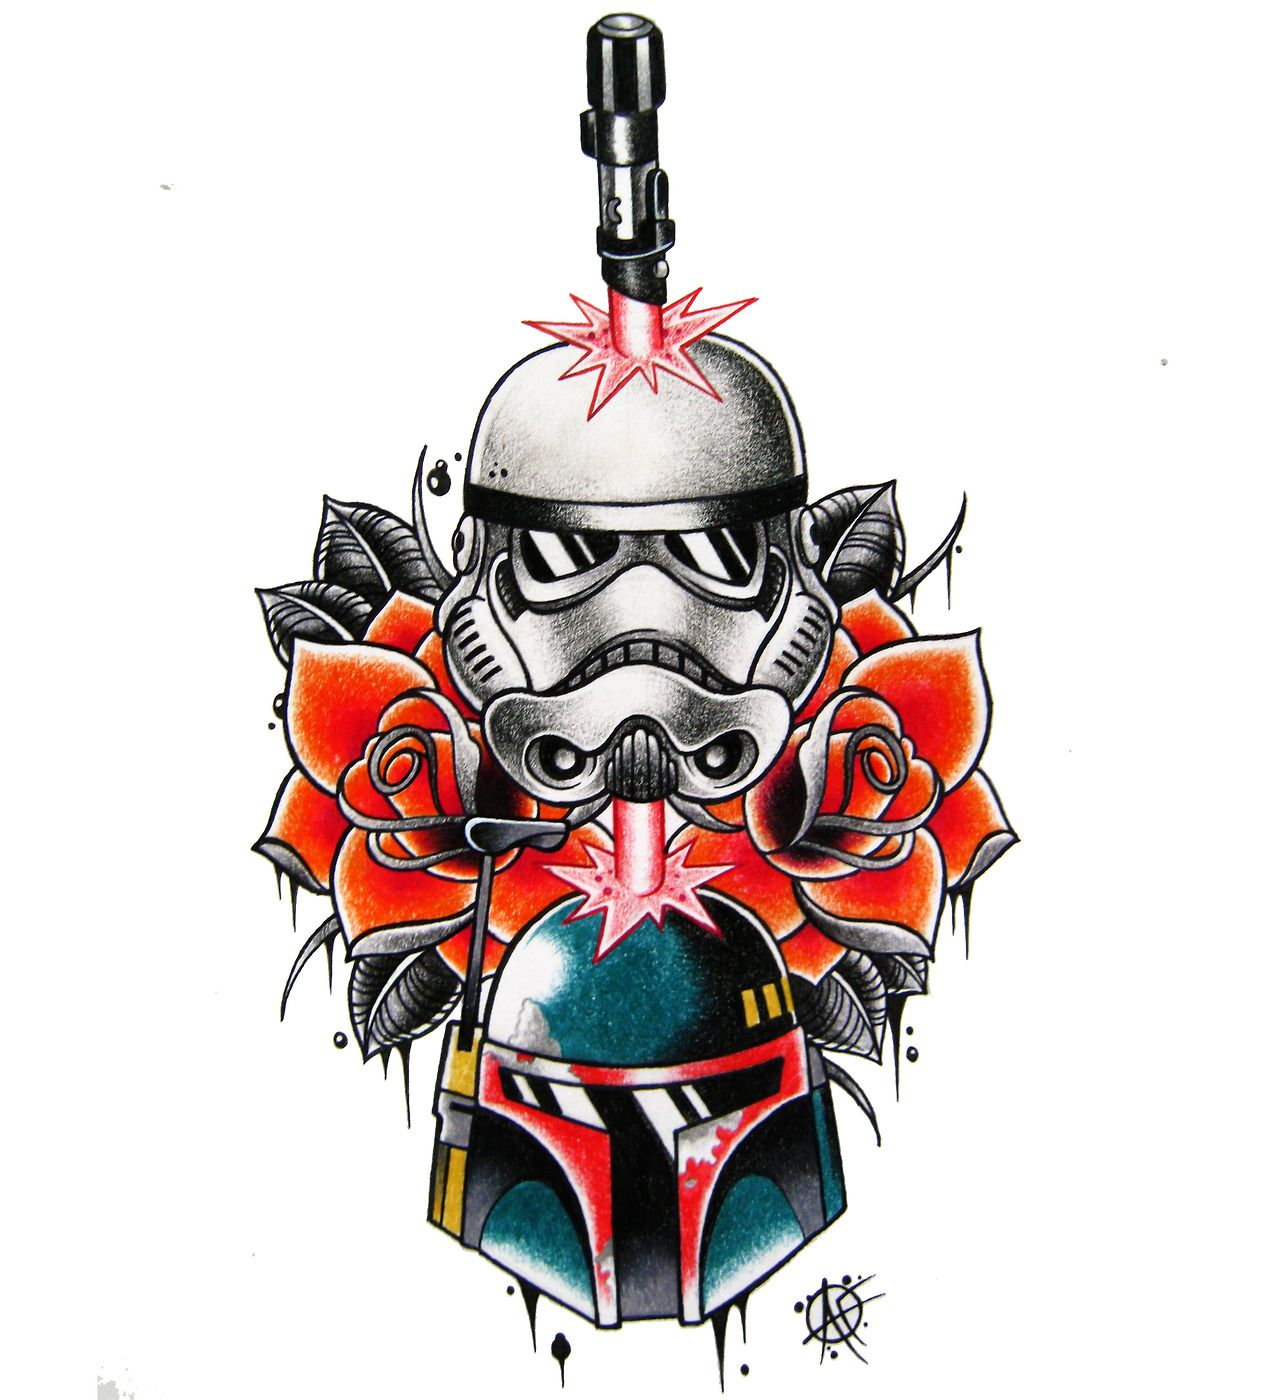 """""""A Quick Star Wars Design For Me To Tattoo On My Mates"""